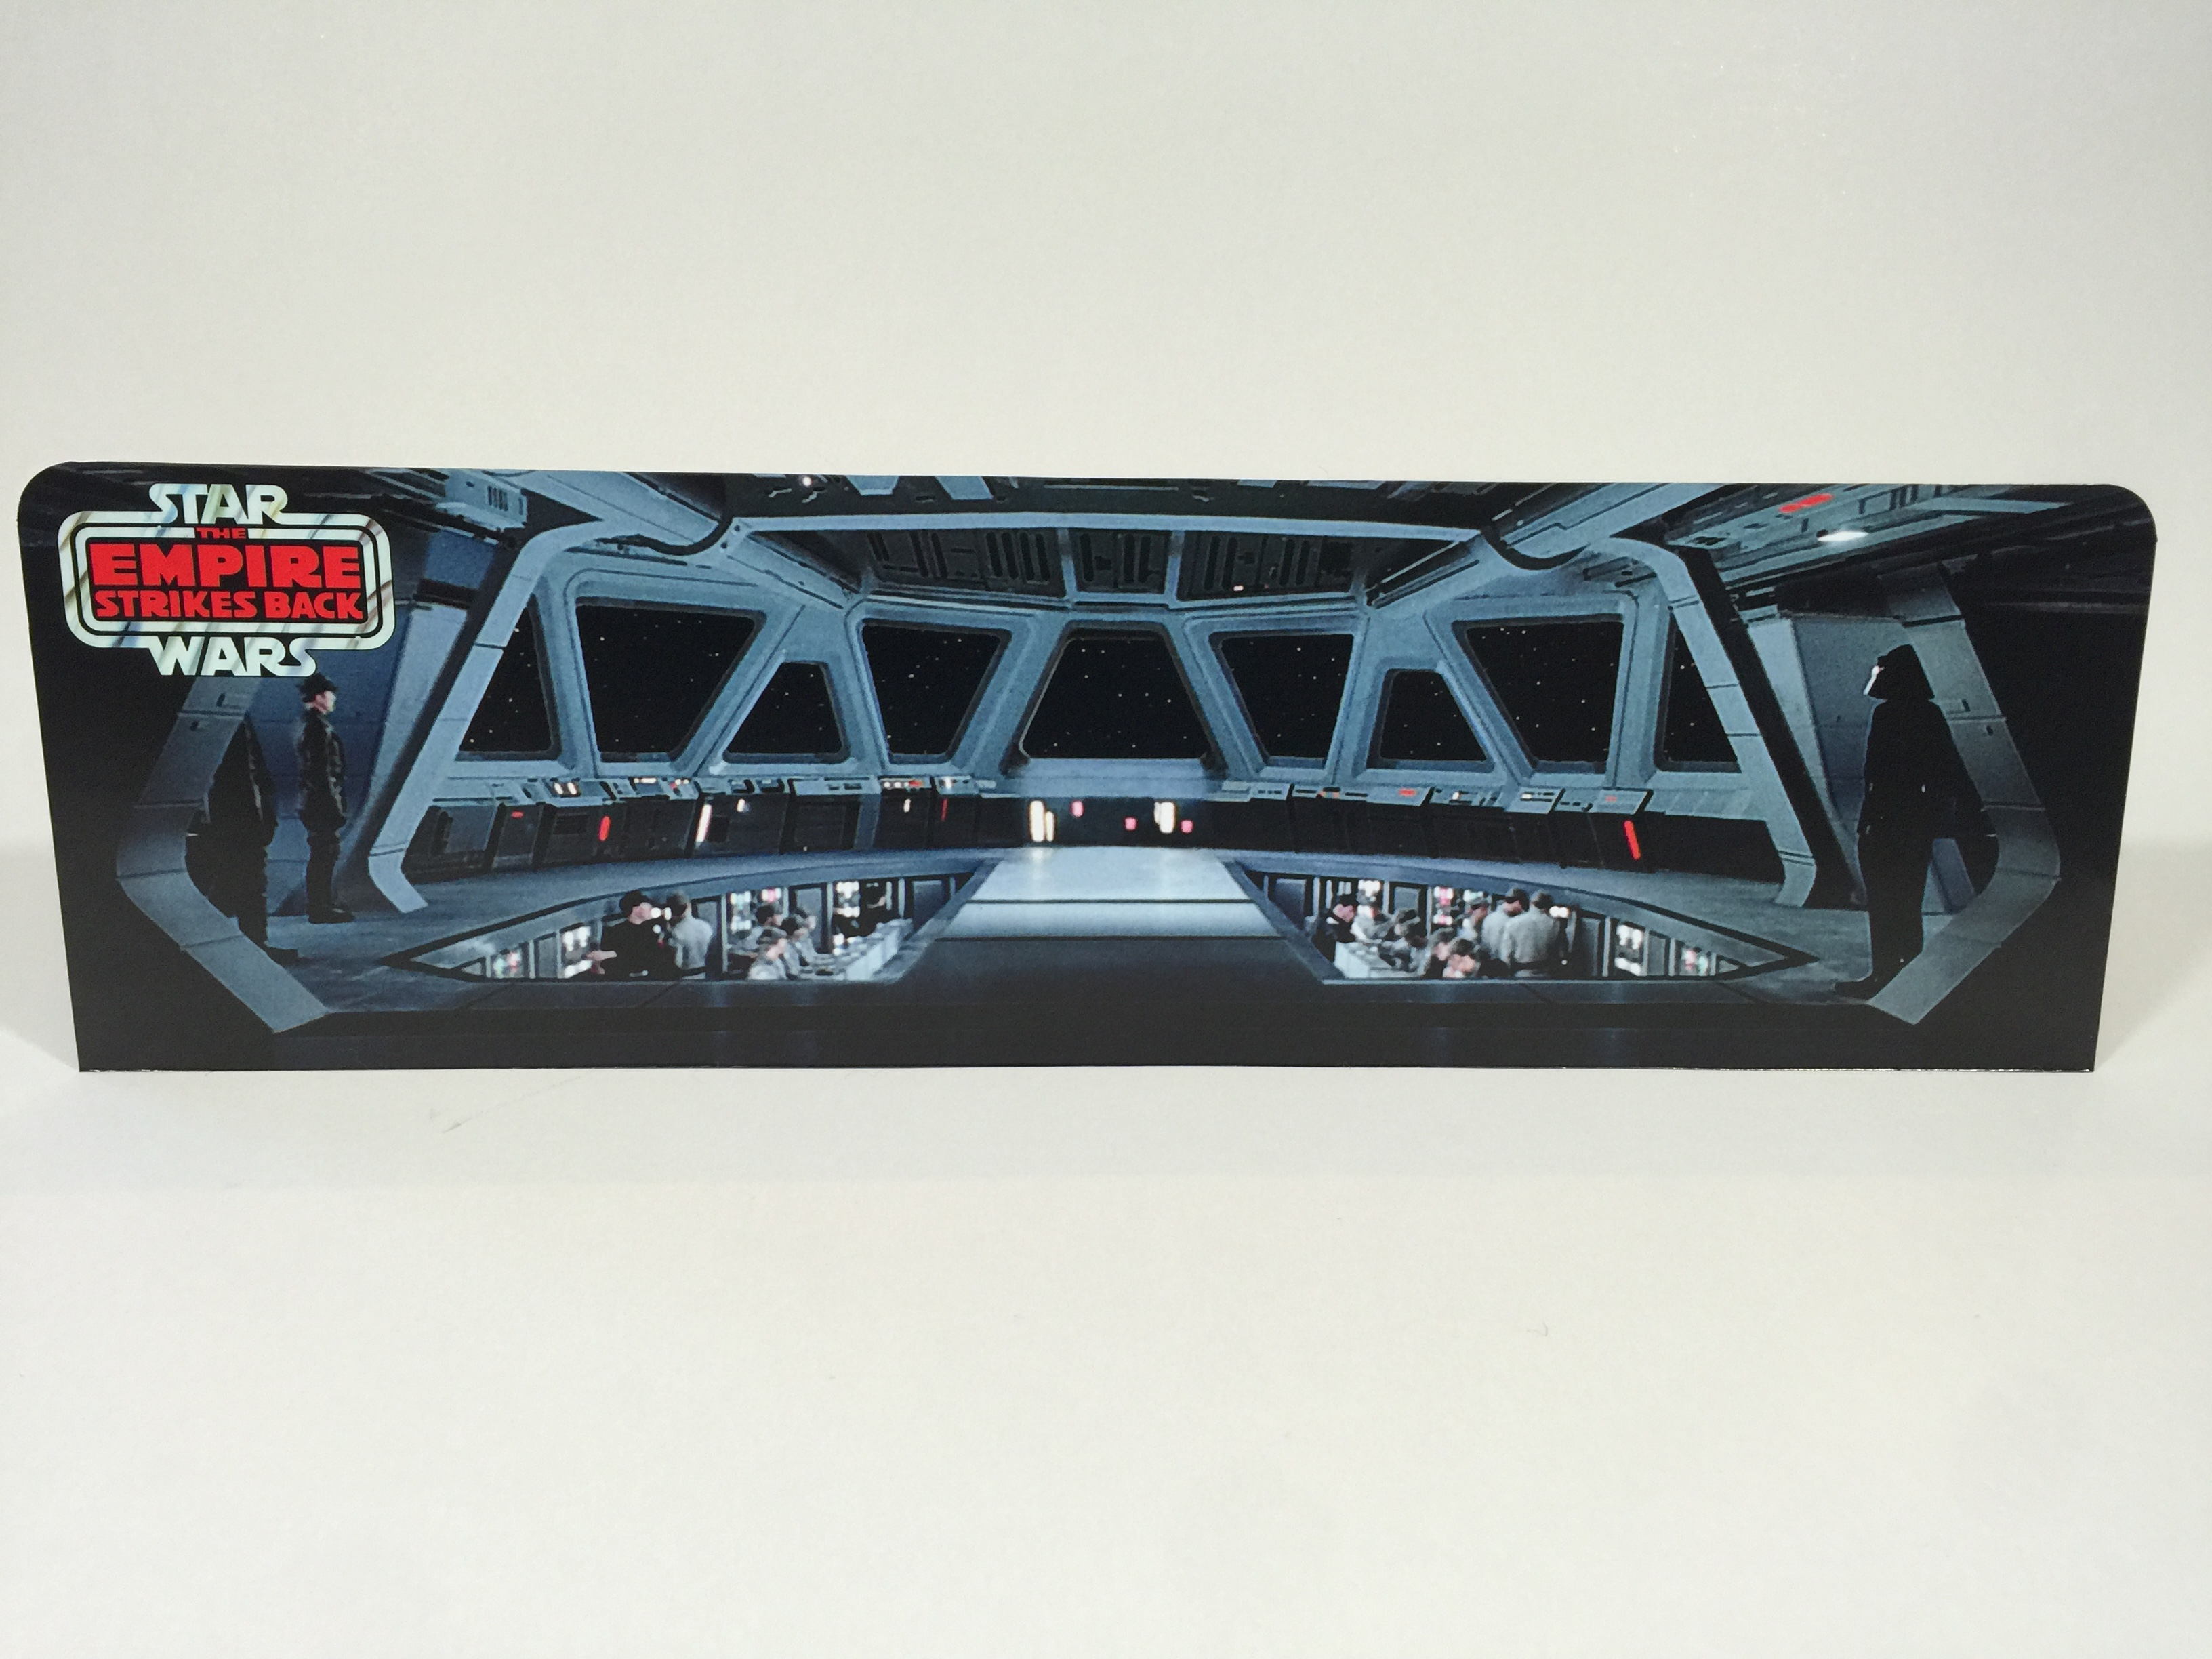 Sungard Exhibition Stand Here Alone : The empire strikes back custom executioners bridge display